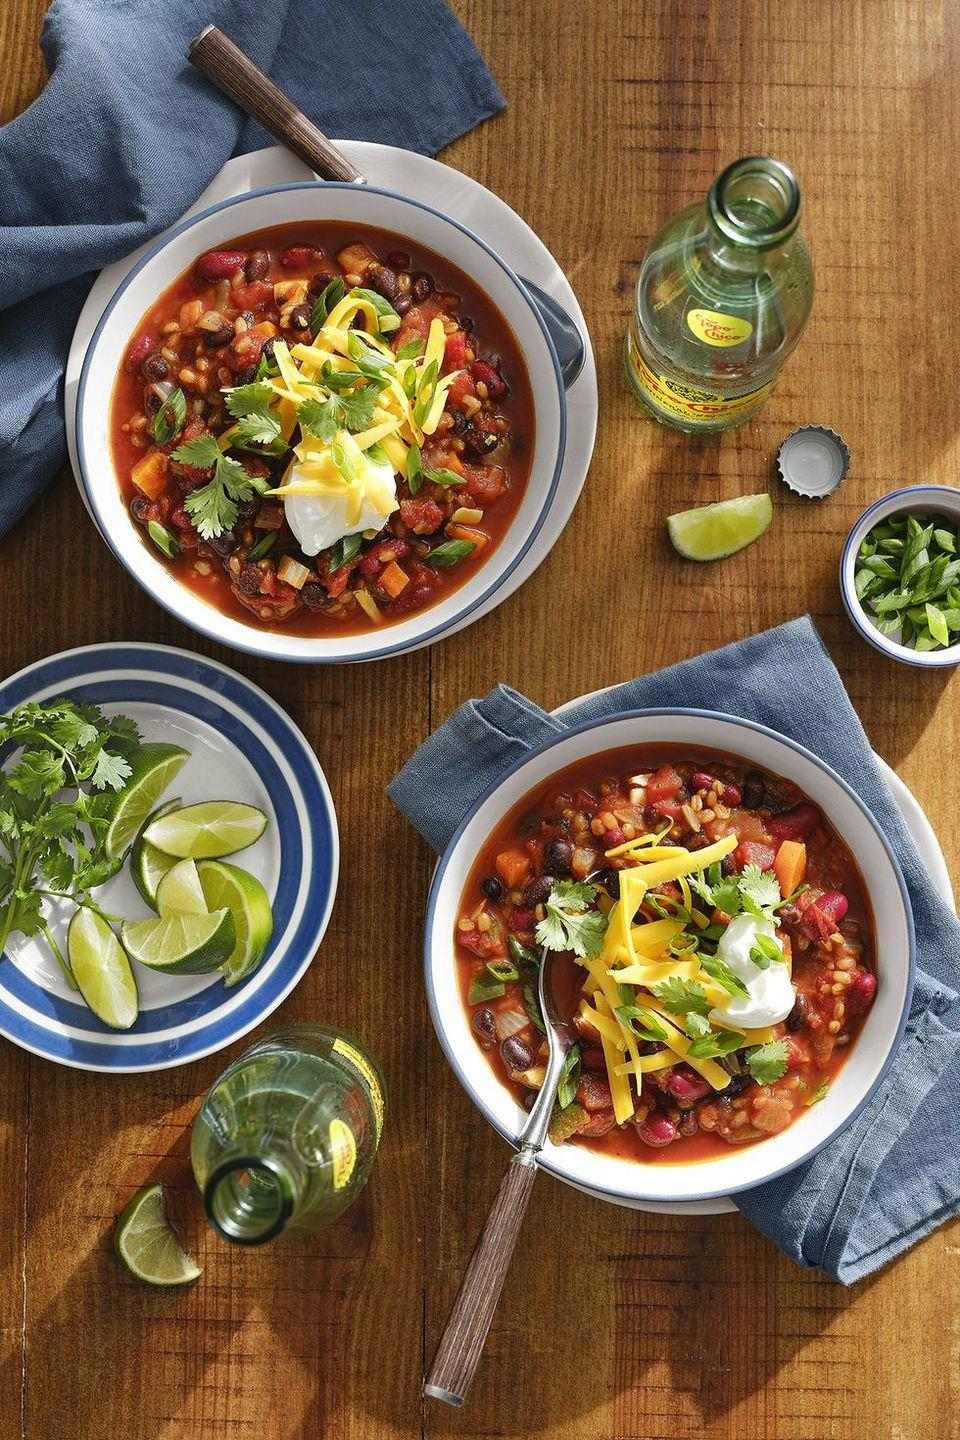 """<p>Everything goes into the slow cooker at the beginning of the day, and by the time you're done with work, you've got a perfectly made #MeatlessMonday meal.</p><p><strong><a href=""""https://www.countryliving.com/food-drinks/a30417636/vegetarian-chili-with-grains-beans-recipe/"""" rel=""""nofollow noopener"""" target=""""_blank"""" data-ylk=""""slk:Get the recipe"""" class=""""link rapid-noclick-resp"""">Get the recipe</a>.</strong></p><p><strong><a class=""""link rapid-noclick-resp"""" href=""""https://www.amazon.com/Hamilton-Beach-Slow-Cooker/dp/B07P97NJL7?tag=syn-yahoo-20&ascsubtag=%5Bartid%7C10063.g.35055779%5Bsrc%7Cyahoo-us"""" rel=""""nofollow noopener"""" target=""""_blank"""" data-ylk=""""slk:SHOP SLOW COOKERS"""">SHOP SLOW COOKERS</a><br></strong></p>"""